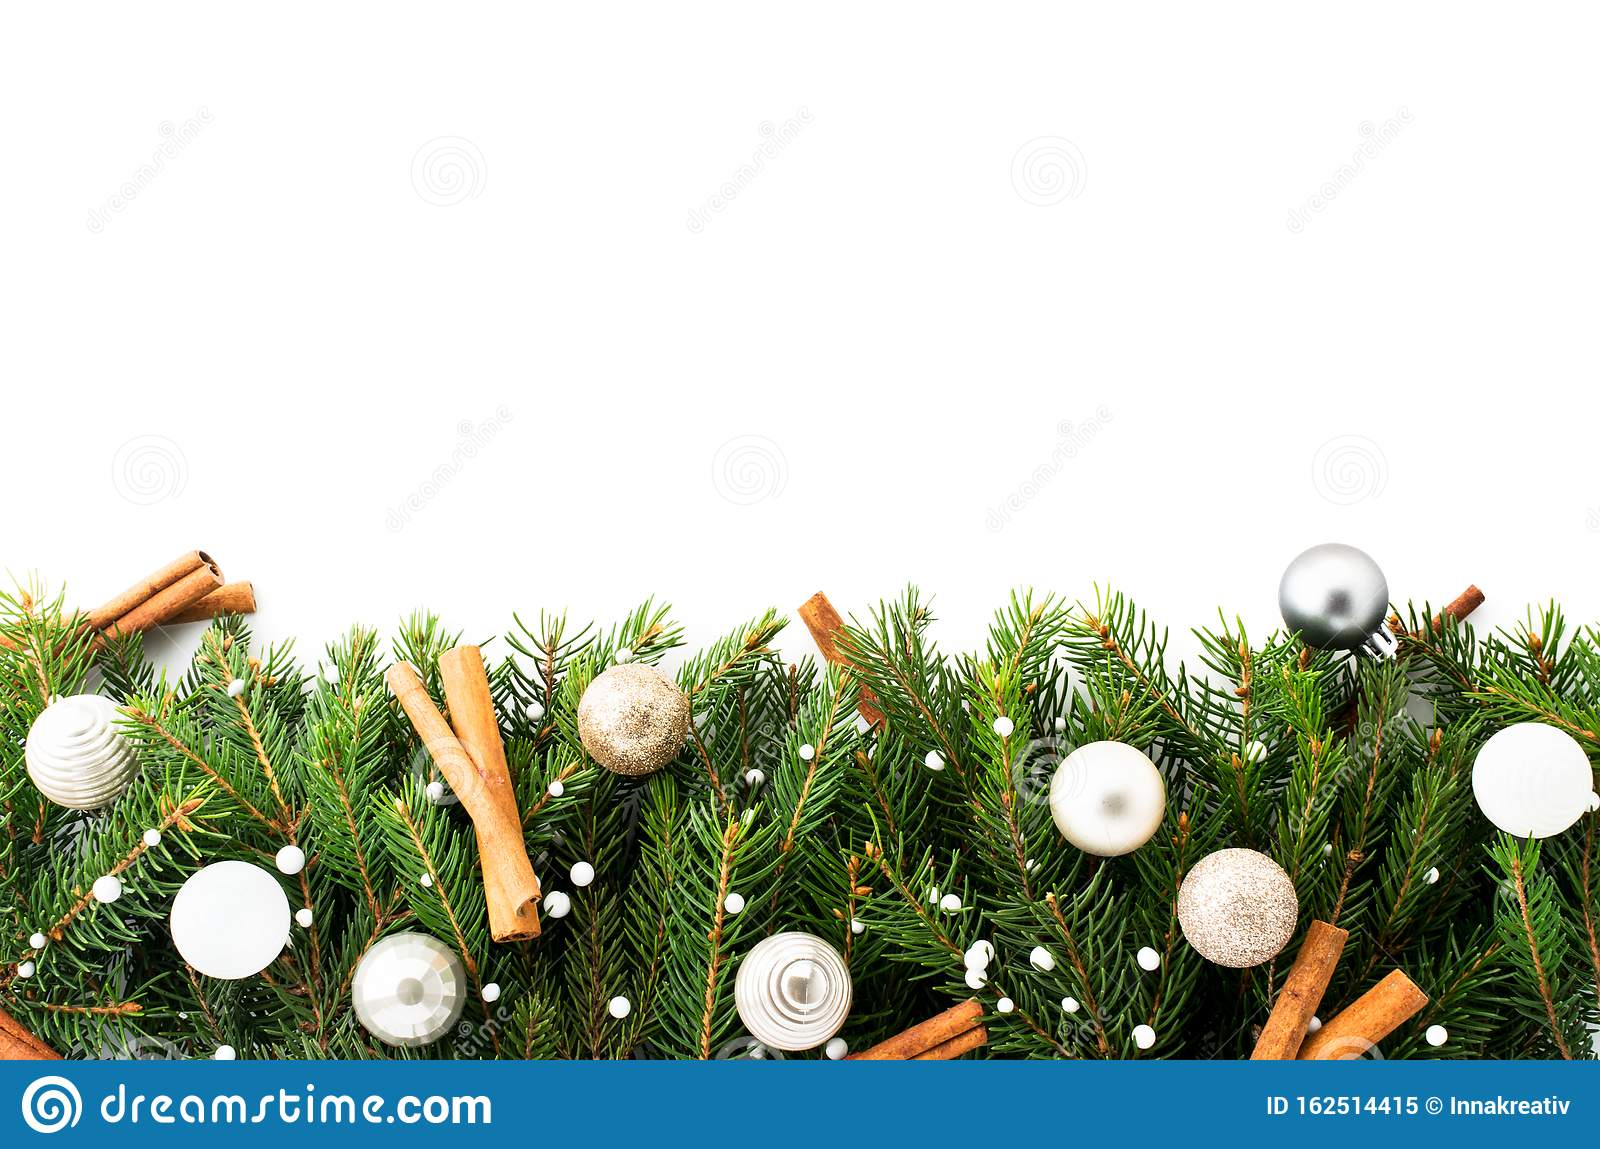 Christmas Tree Branches Decorated With Toys And Cinnamon Sticks On A White Place For Text Stock Image Image Of Natural Green 162514415